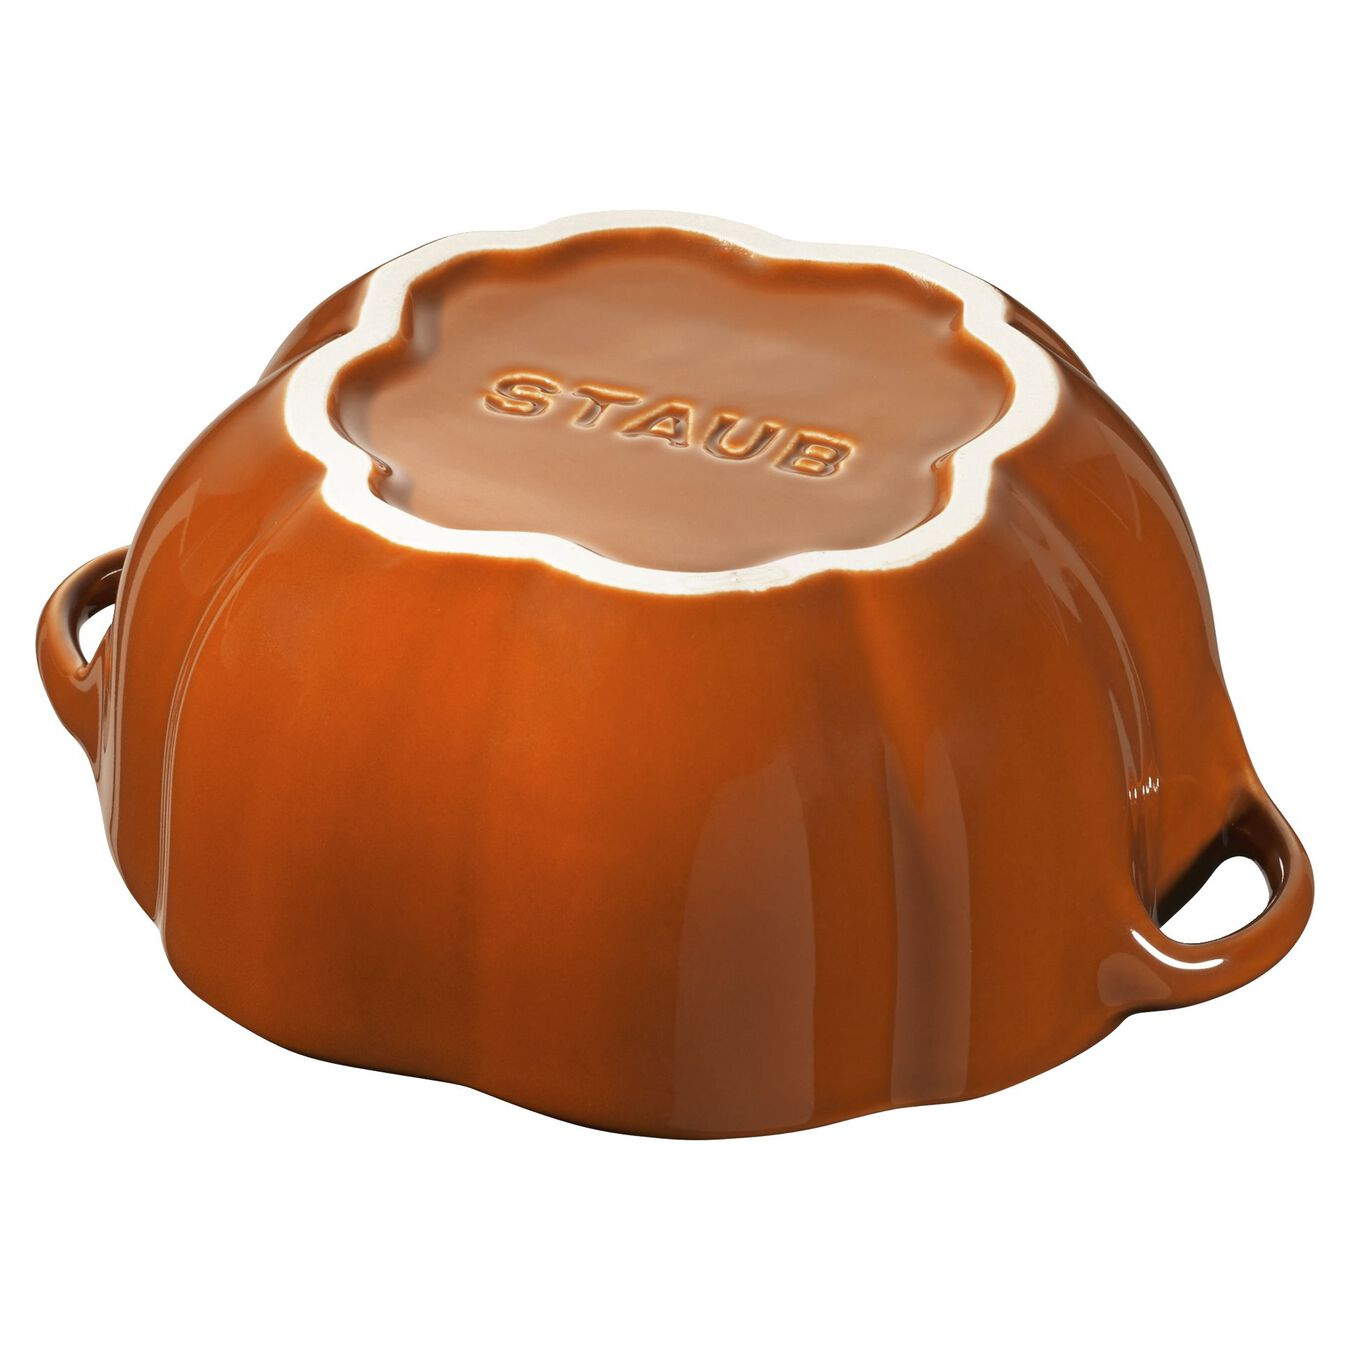 Cocotte zucca - 12 cm, cannella,,large 5